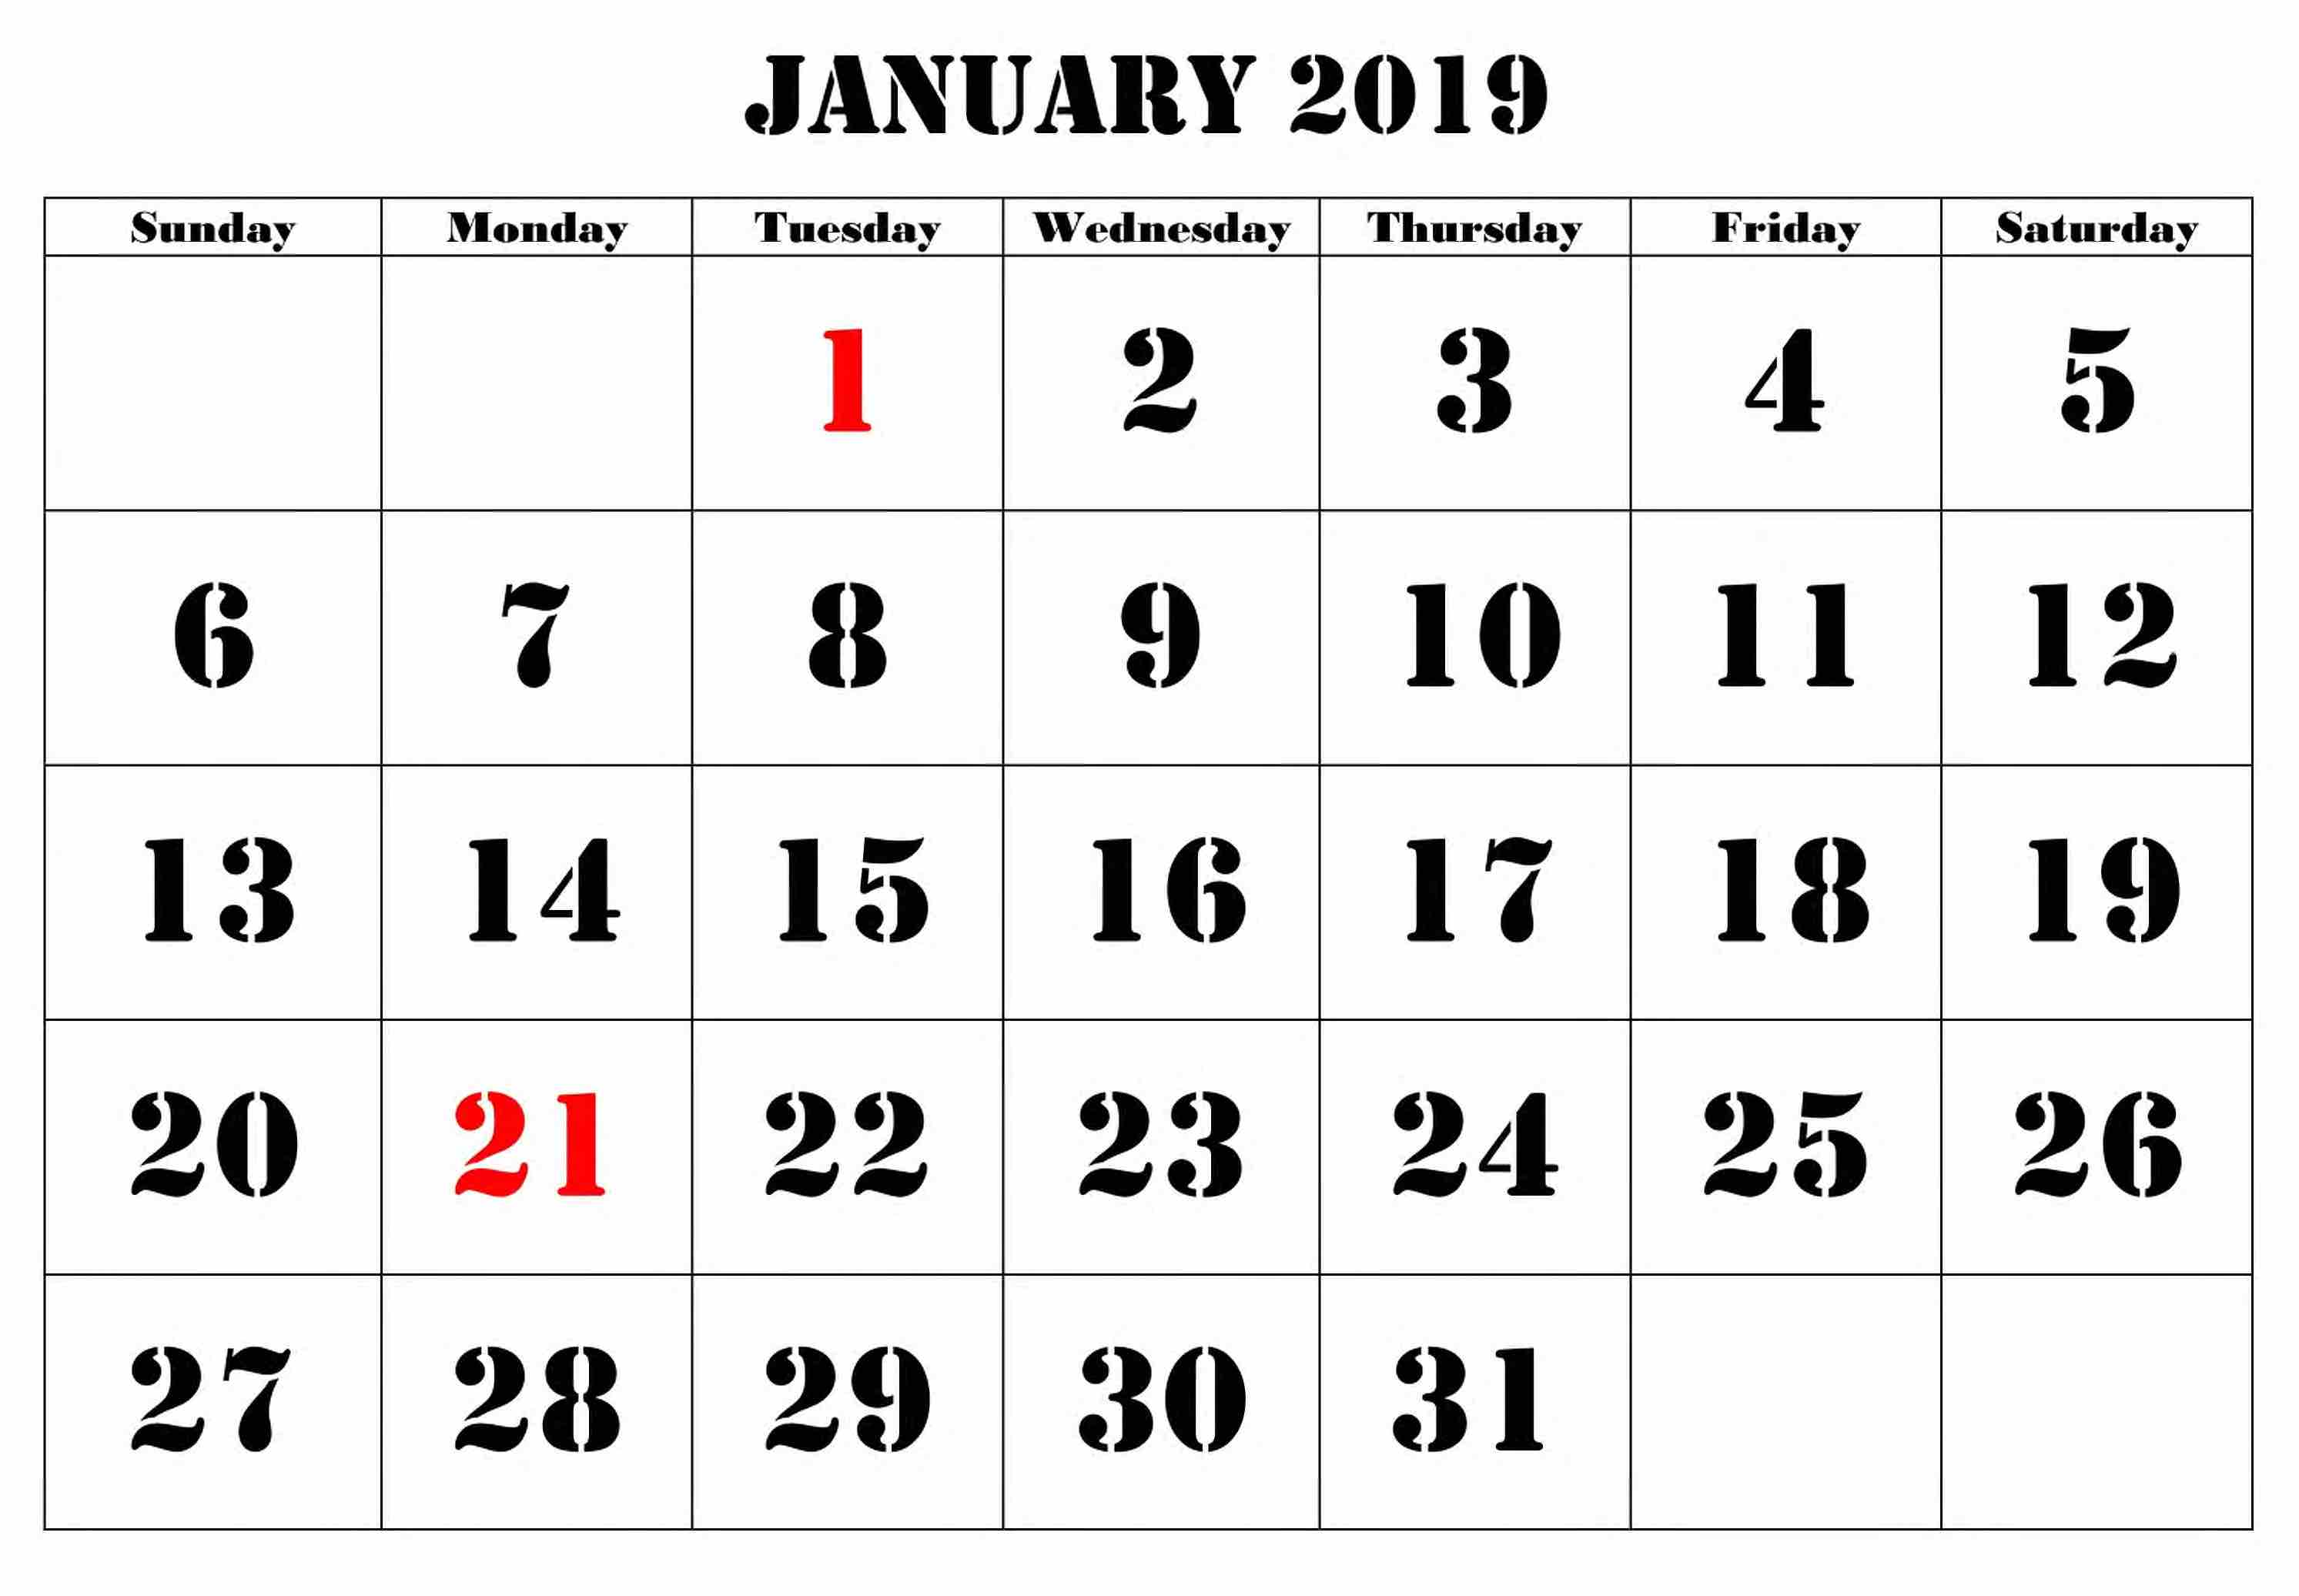 Calendar January 2019 Large Number